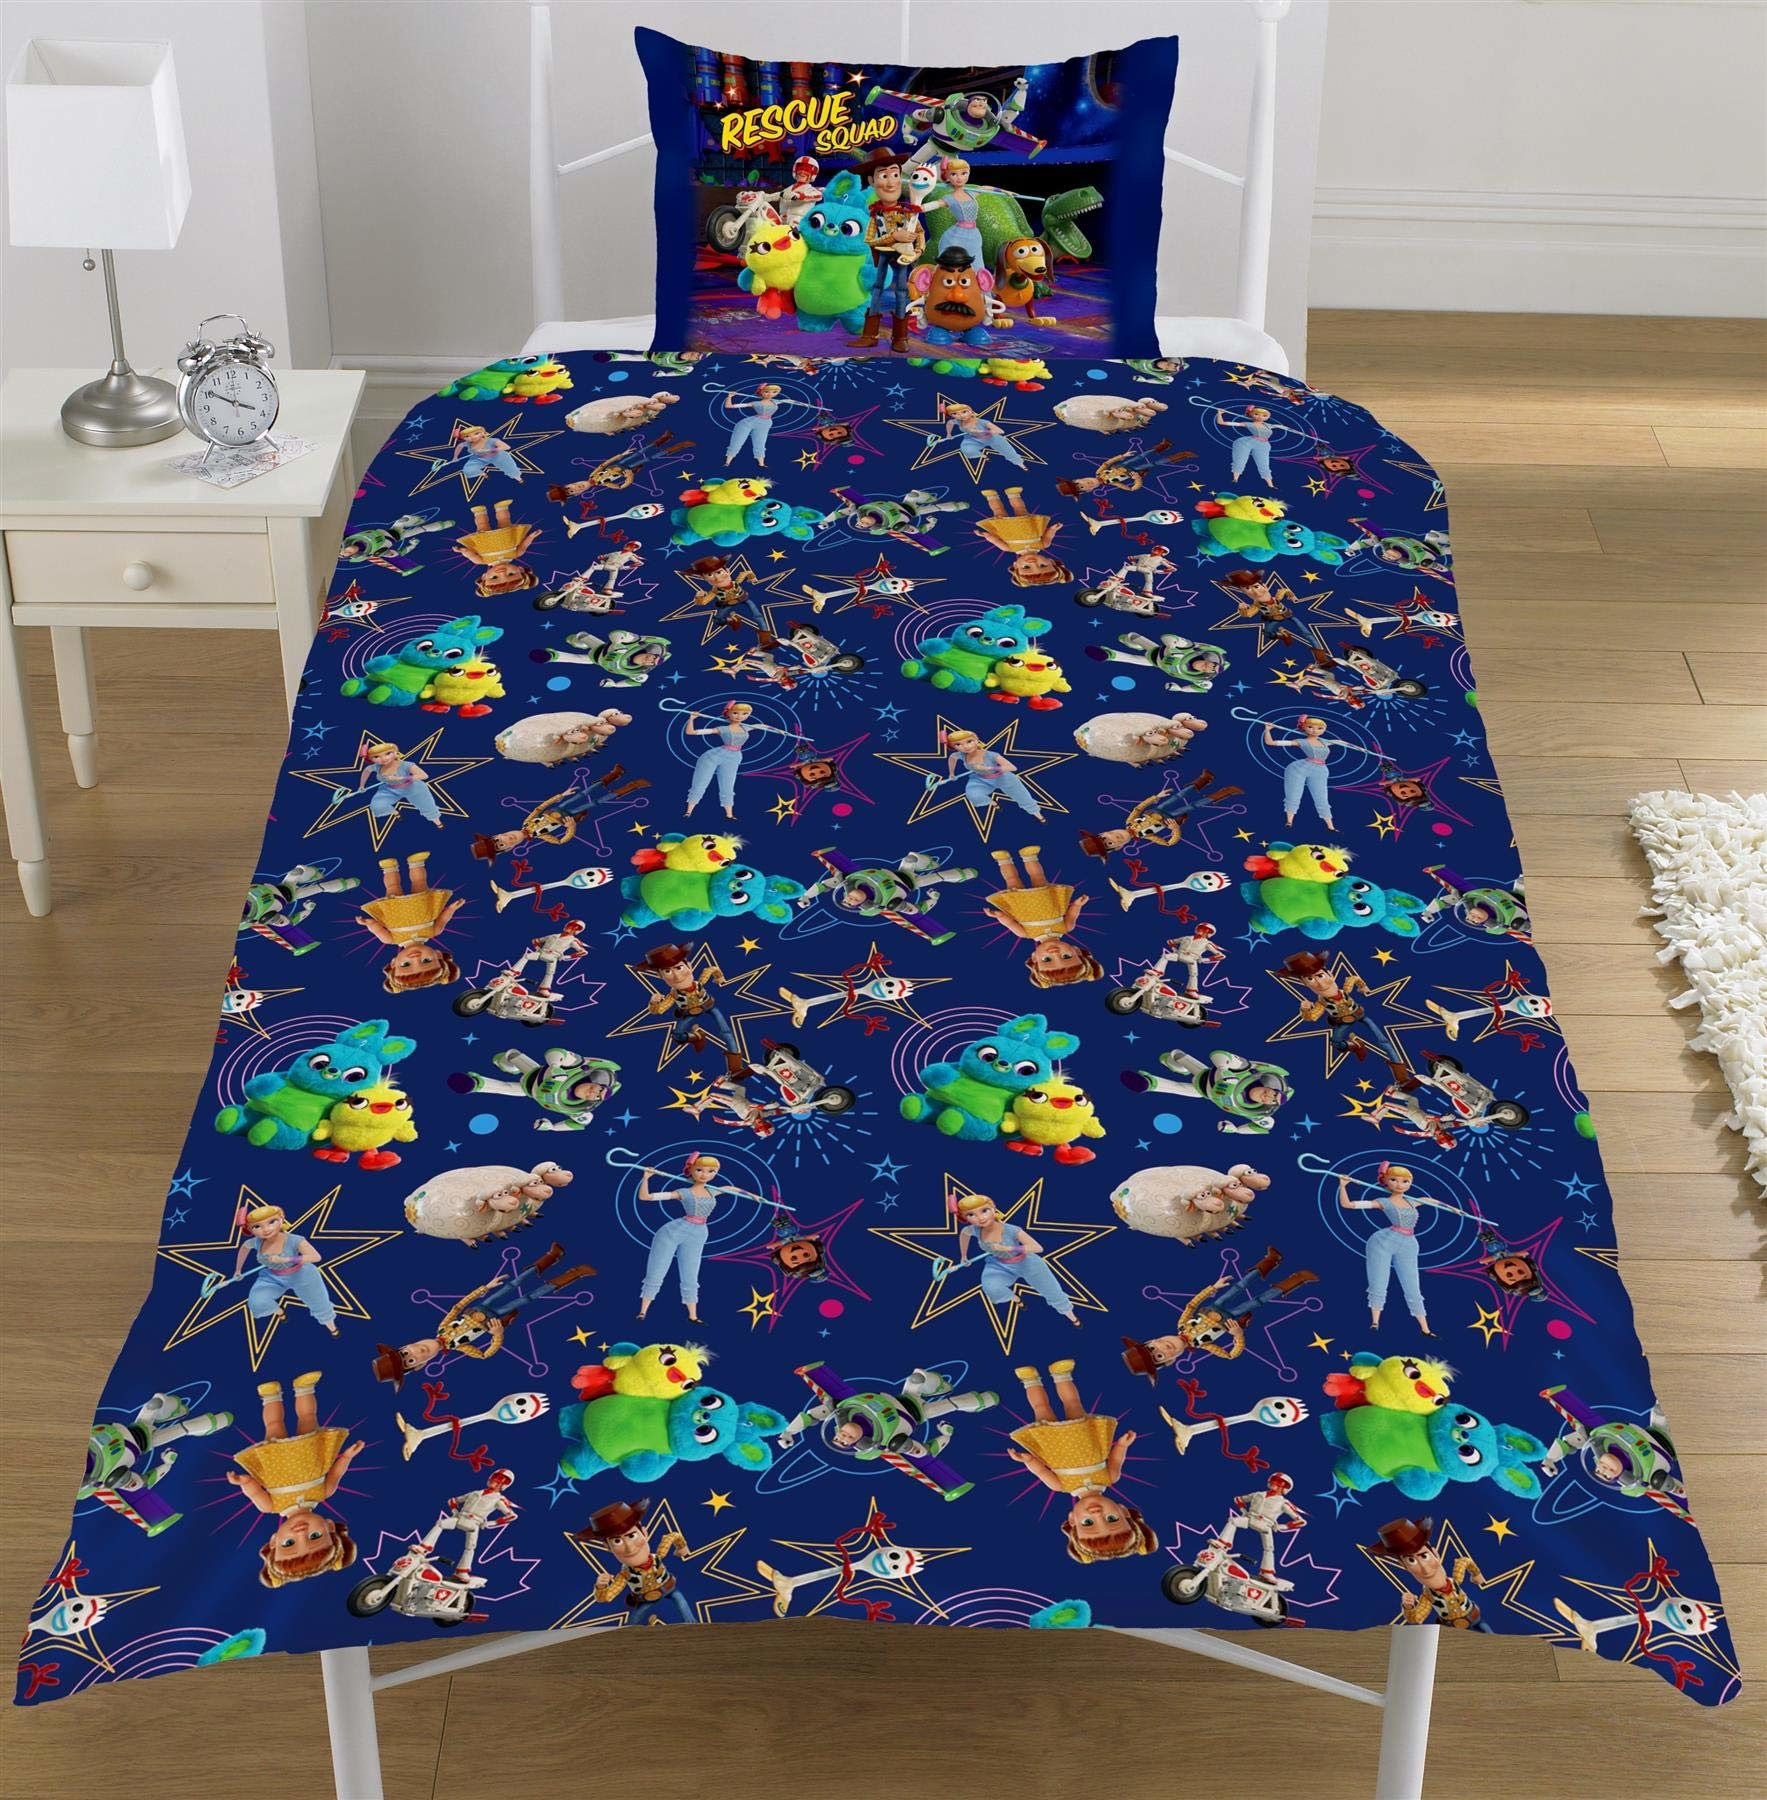 Disney Pixar Toy Story 4 Junior Duvet Cover Set Rescue Squad - Copy